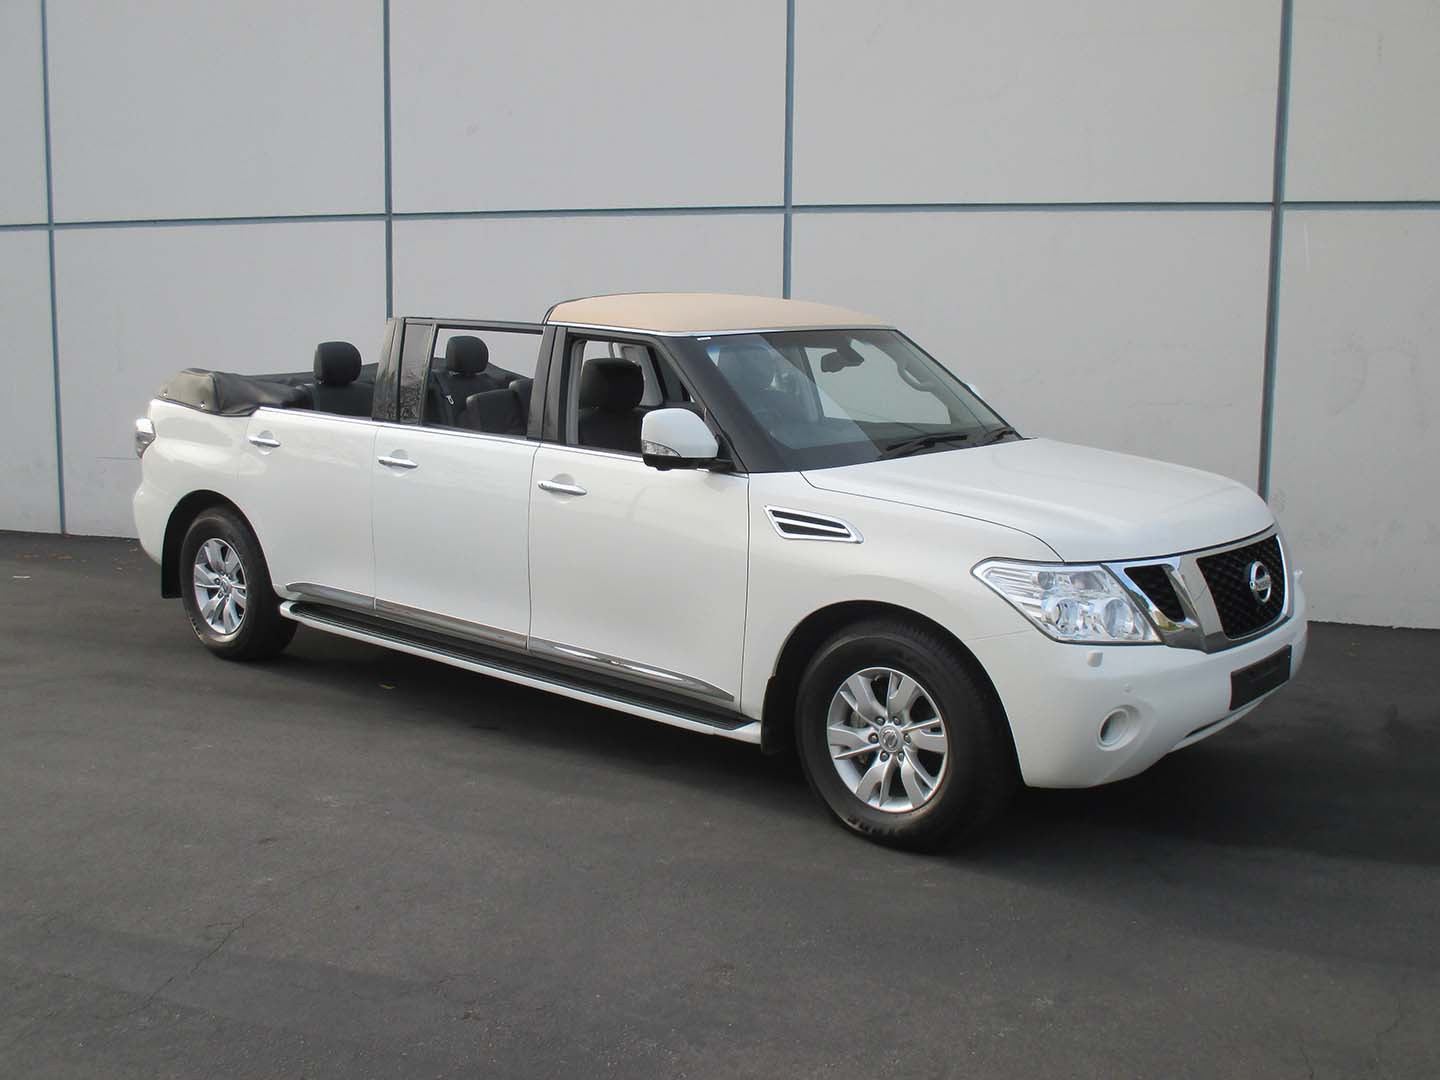 nissan patrol convertible. Black Bedroom Furniture Sets. Home Design Ideas